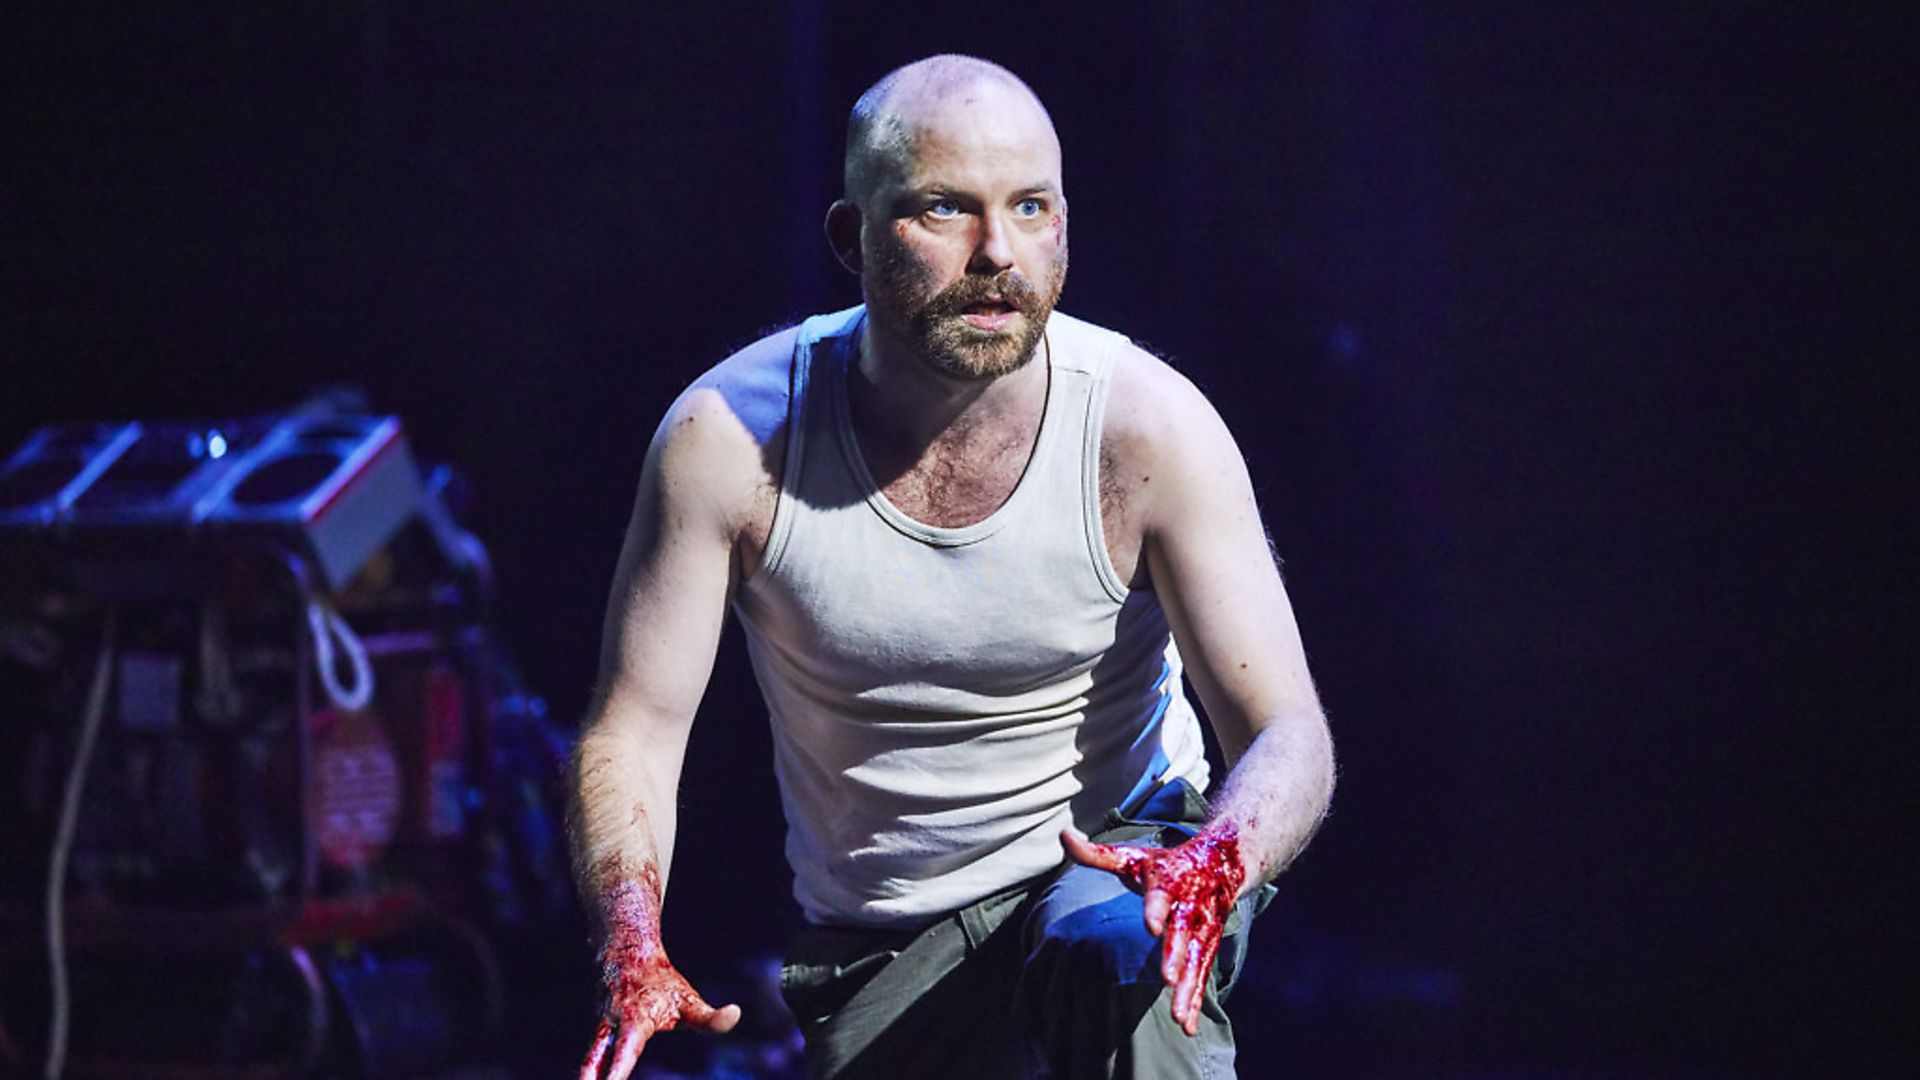 Rory Kinnear plays Macbeth at the Royal National Theatre, London. Picture:  Brinkhoff-Moegenburg - Credit: Archant